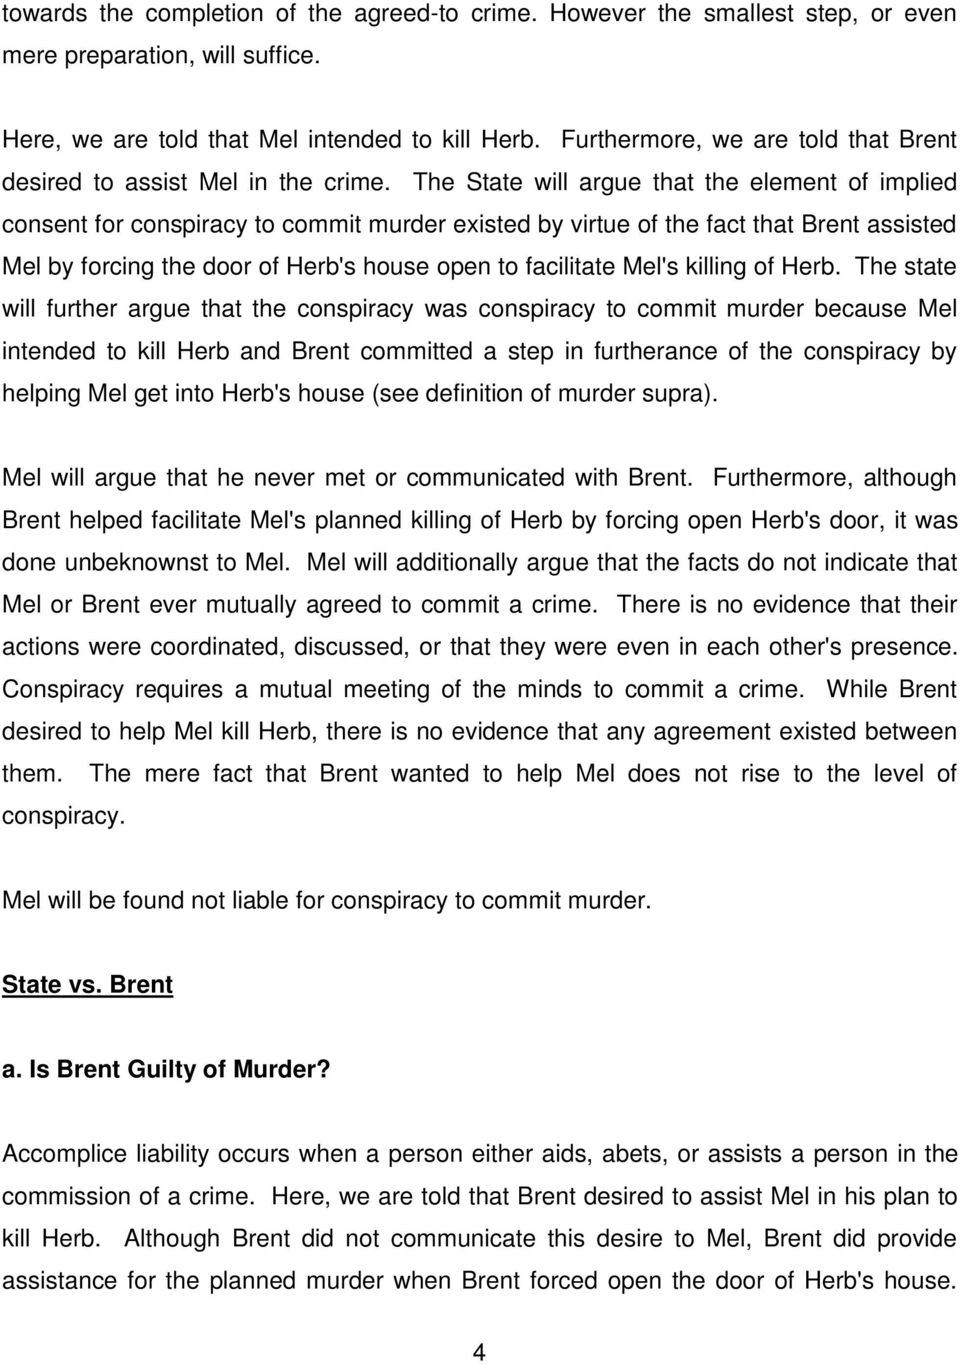 The State will argue that the element of implied consent for conspiracy to commit murder existed by virtue of the fact that Brent assisted Mel by forcing the door of Herb's house open to facilitate